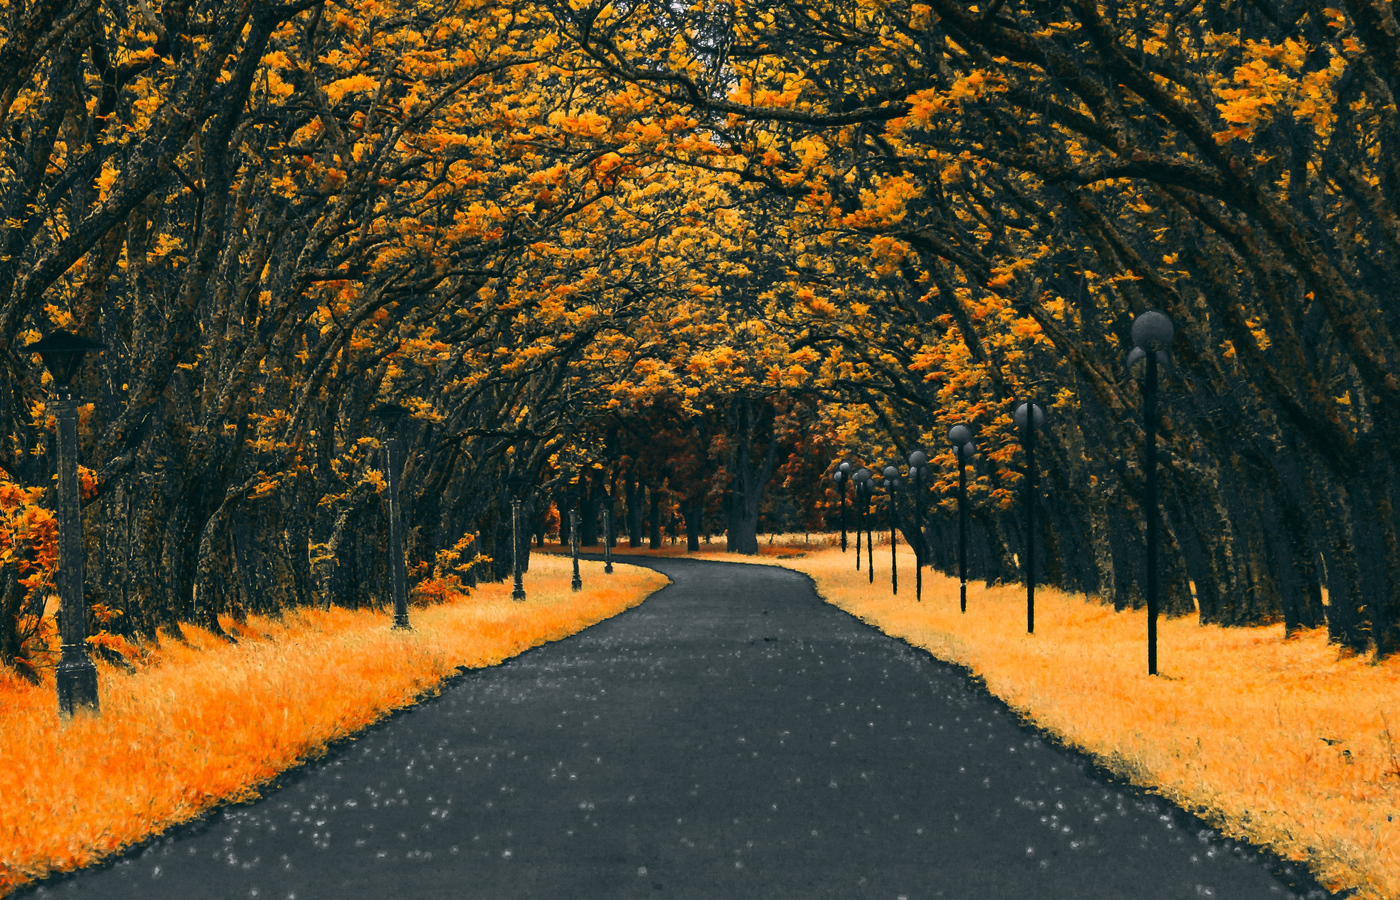 paved-road-autumn-4k-g7.jpg